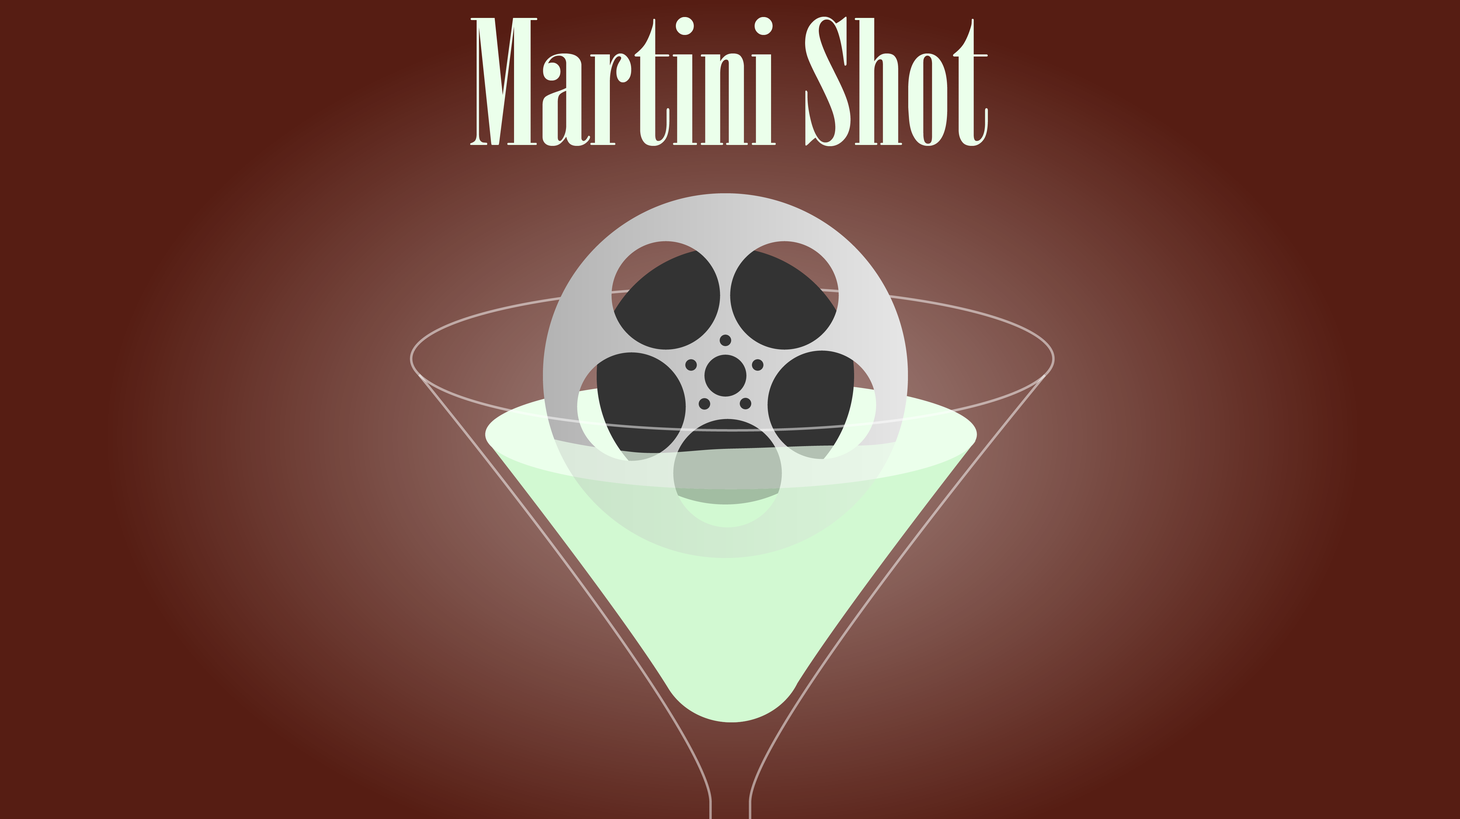 This is Rob Long and on today's Martini Shot I talk about what everyone is talking about, the cancellation of Roseanne, but I talk about it in the context of Victorian menswear. Yeah, you heard me.